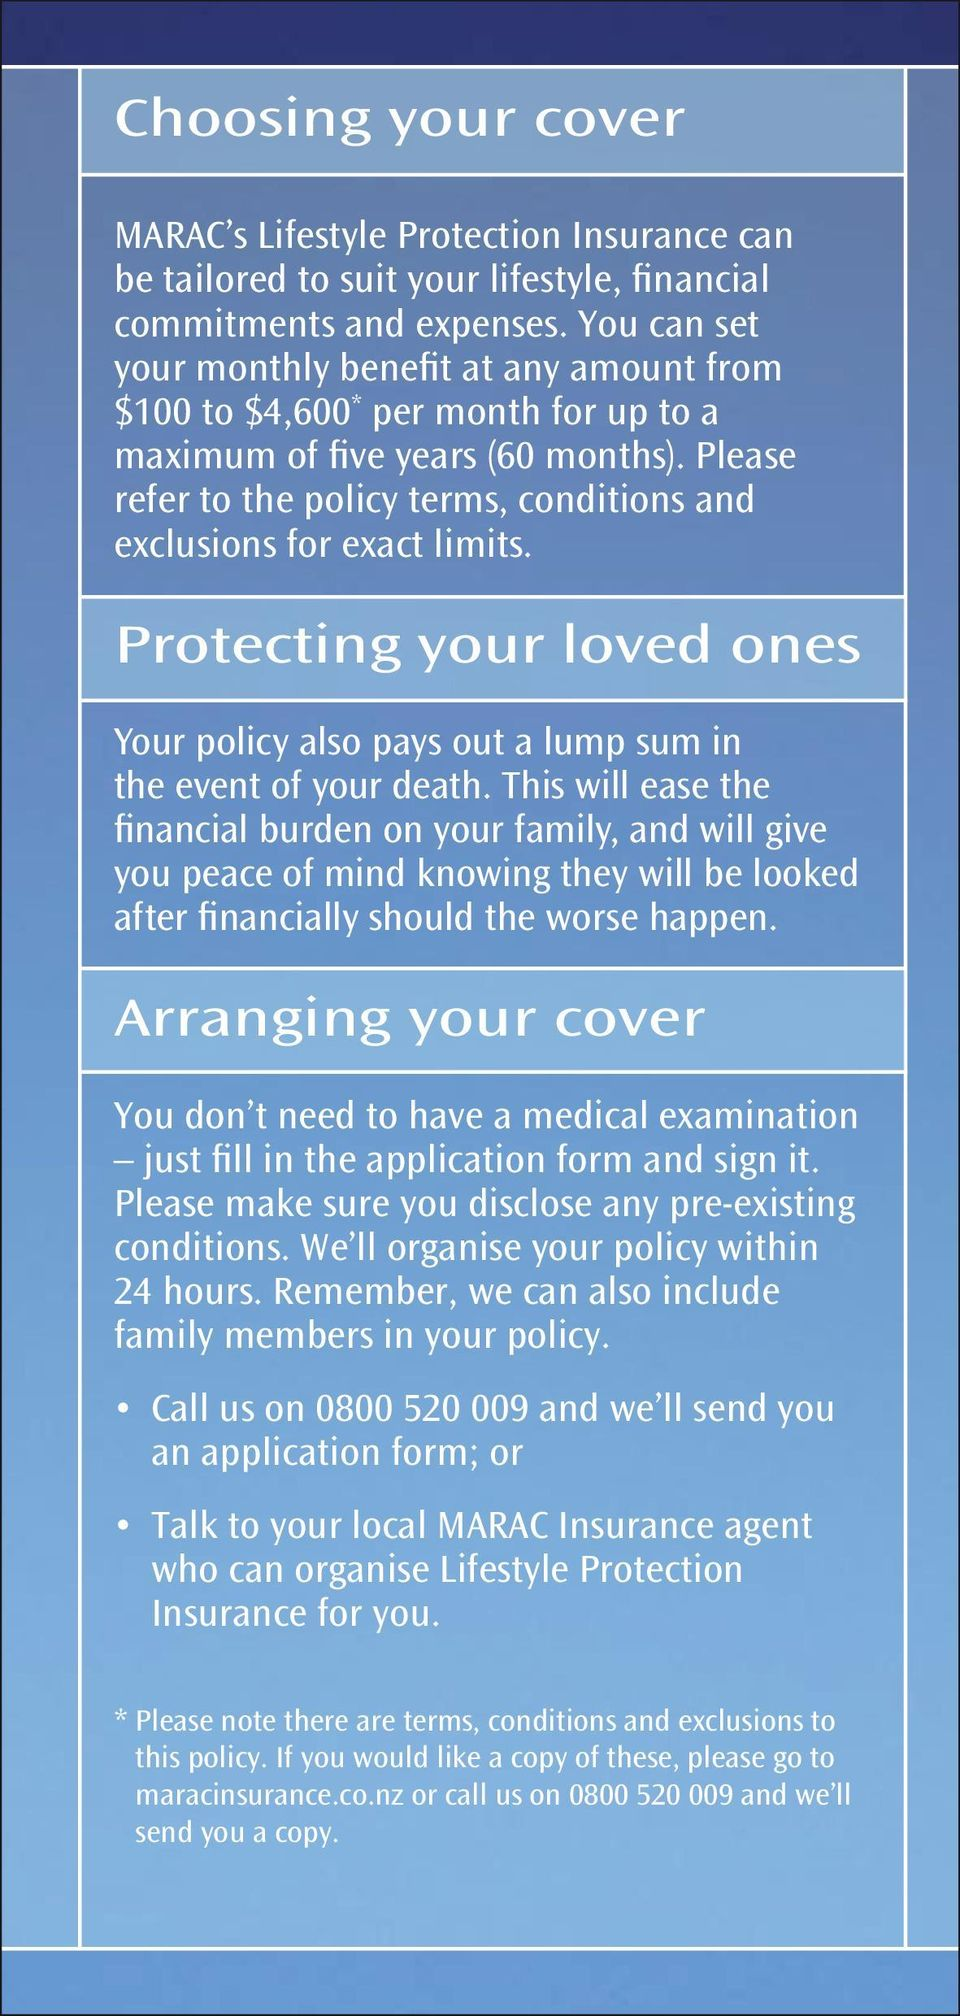 Please refer to the policy terms, conditions and exclusions for exact limits. Protecting your loved ones Your policy also pays out a lump sum in the event of your death.